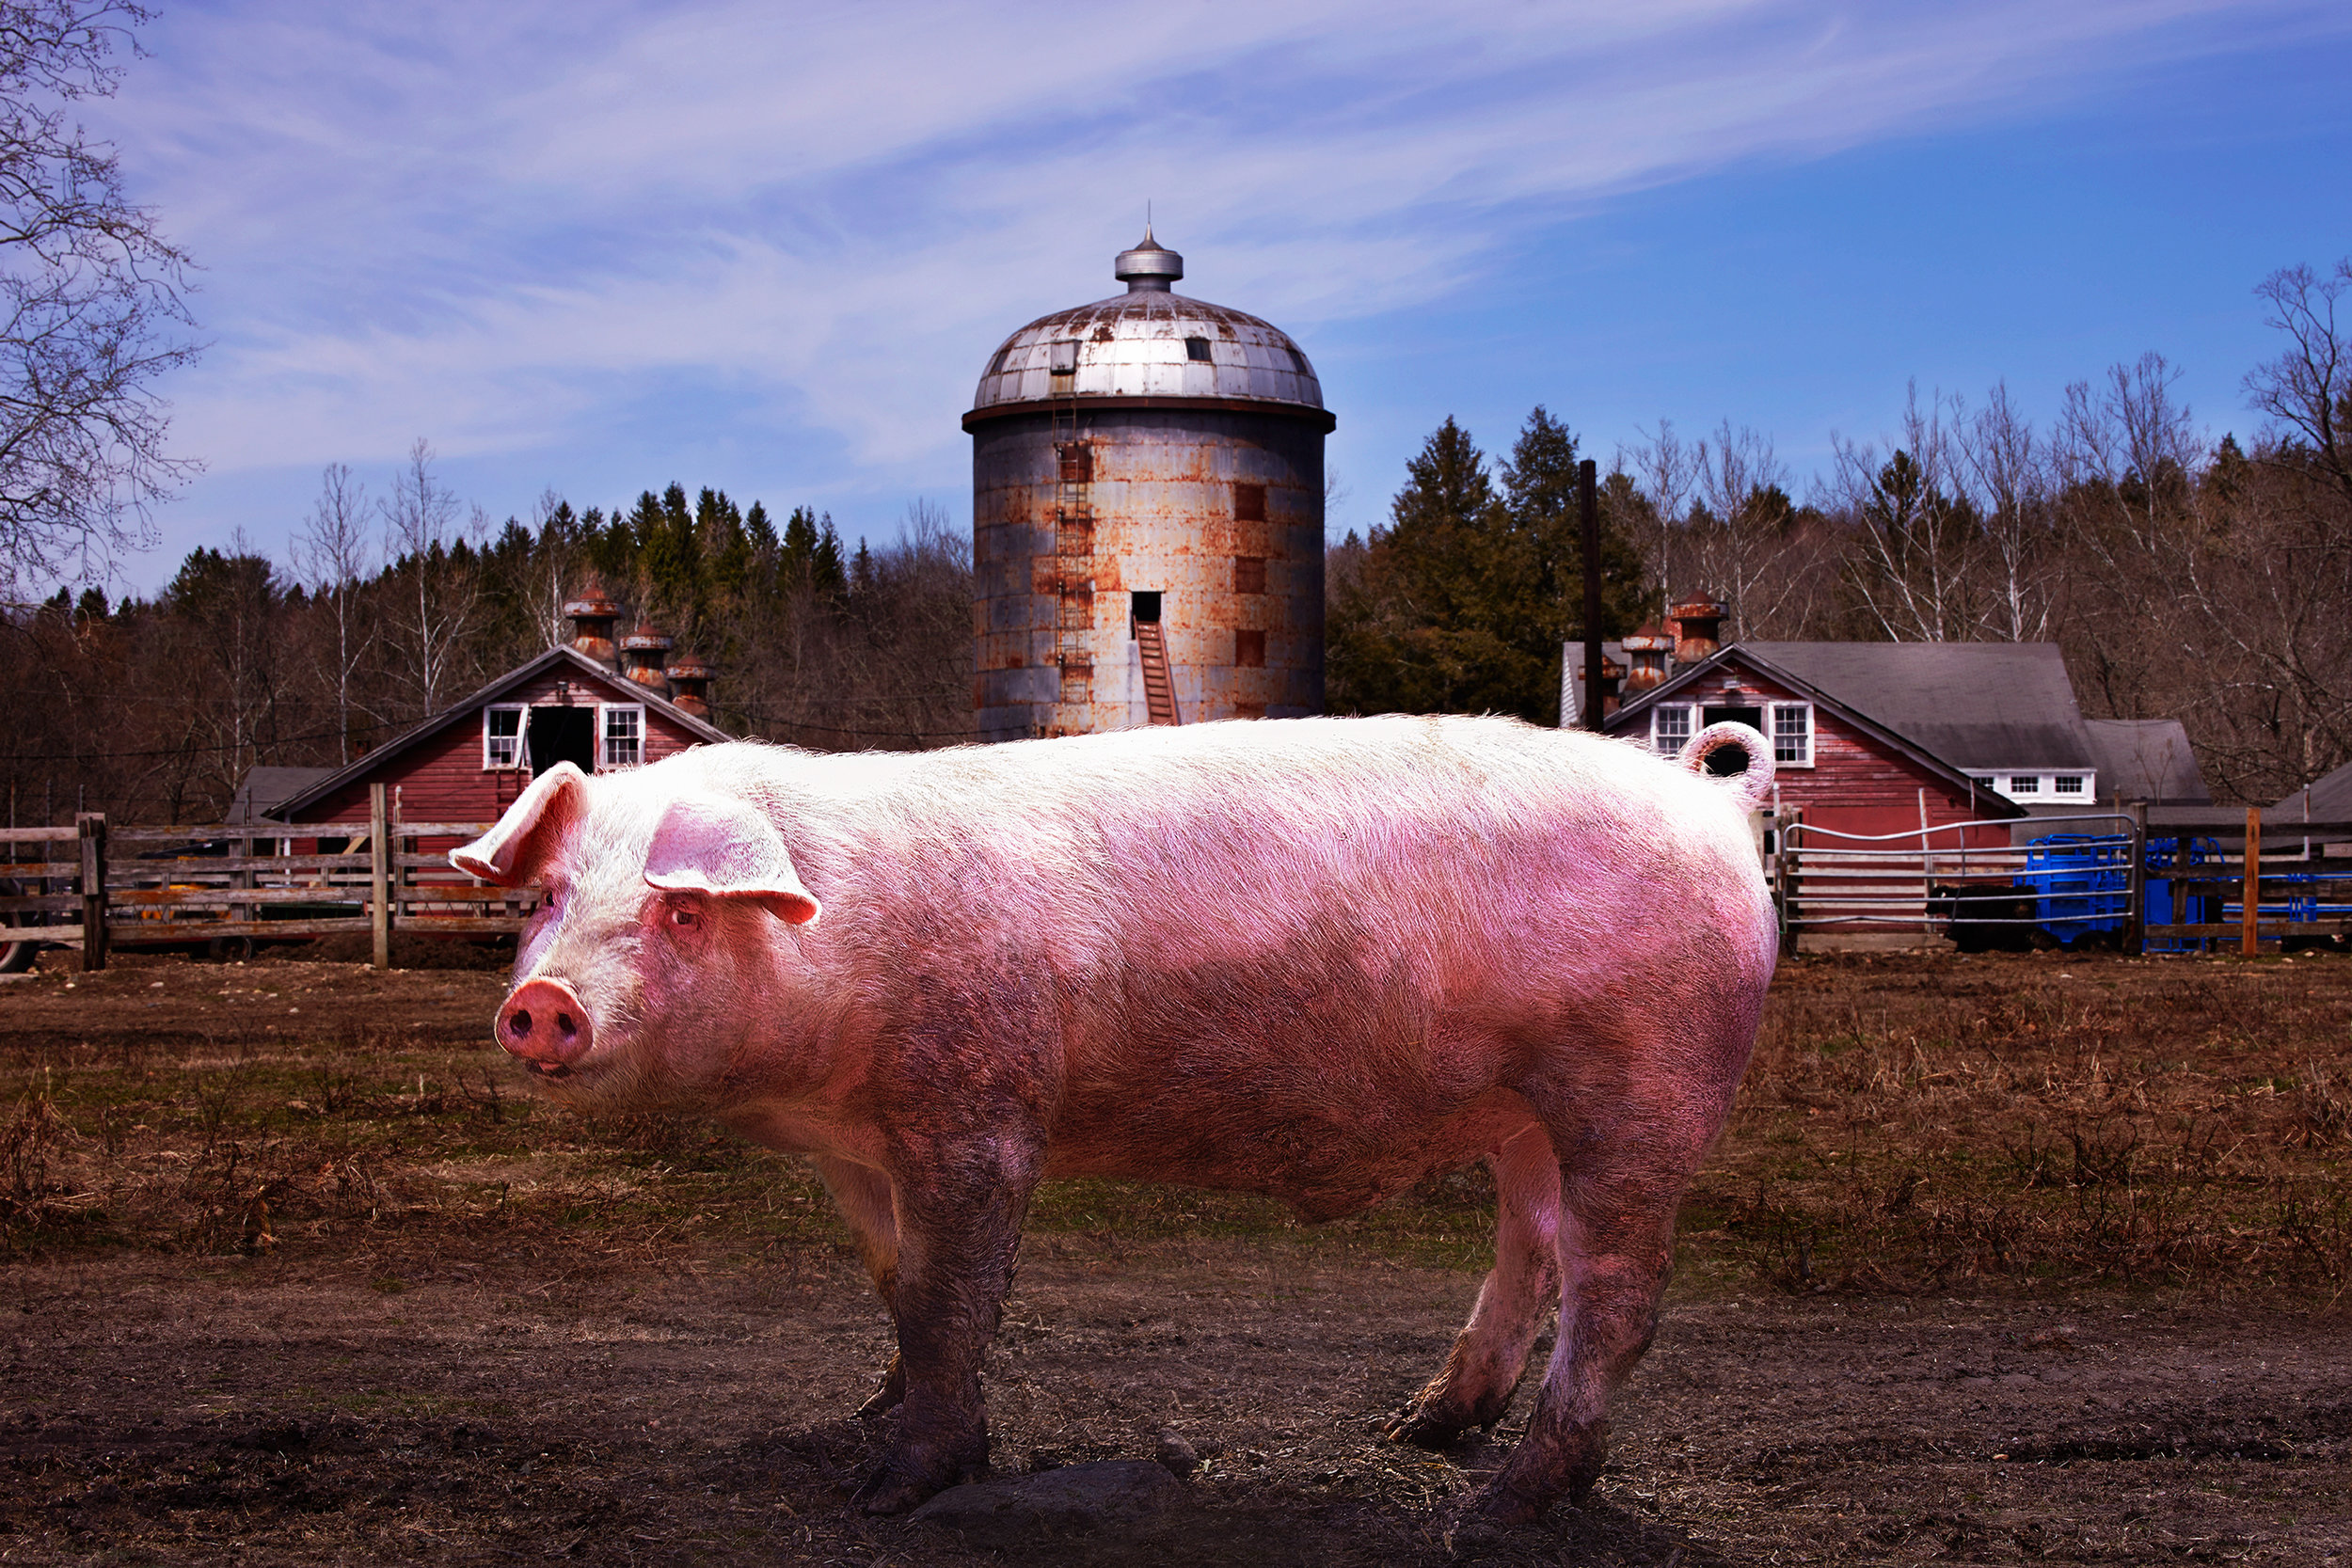 PIG-OX-HOLLOW-FARM-©-JONATHAN-R.-BECKERMAN-PHOTOGRAPHY-041615.jpg